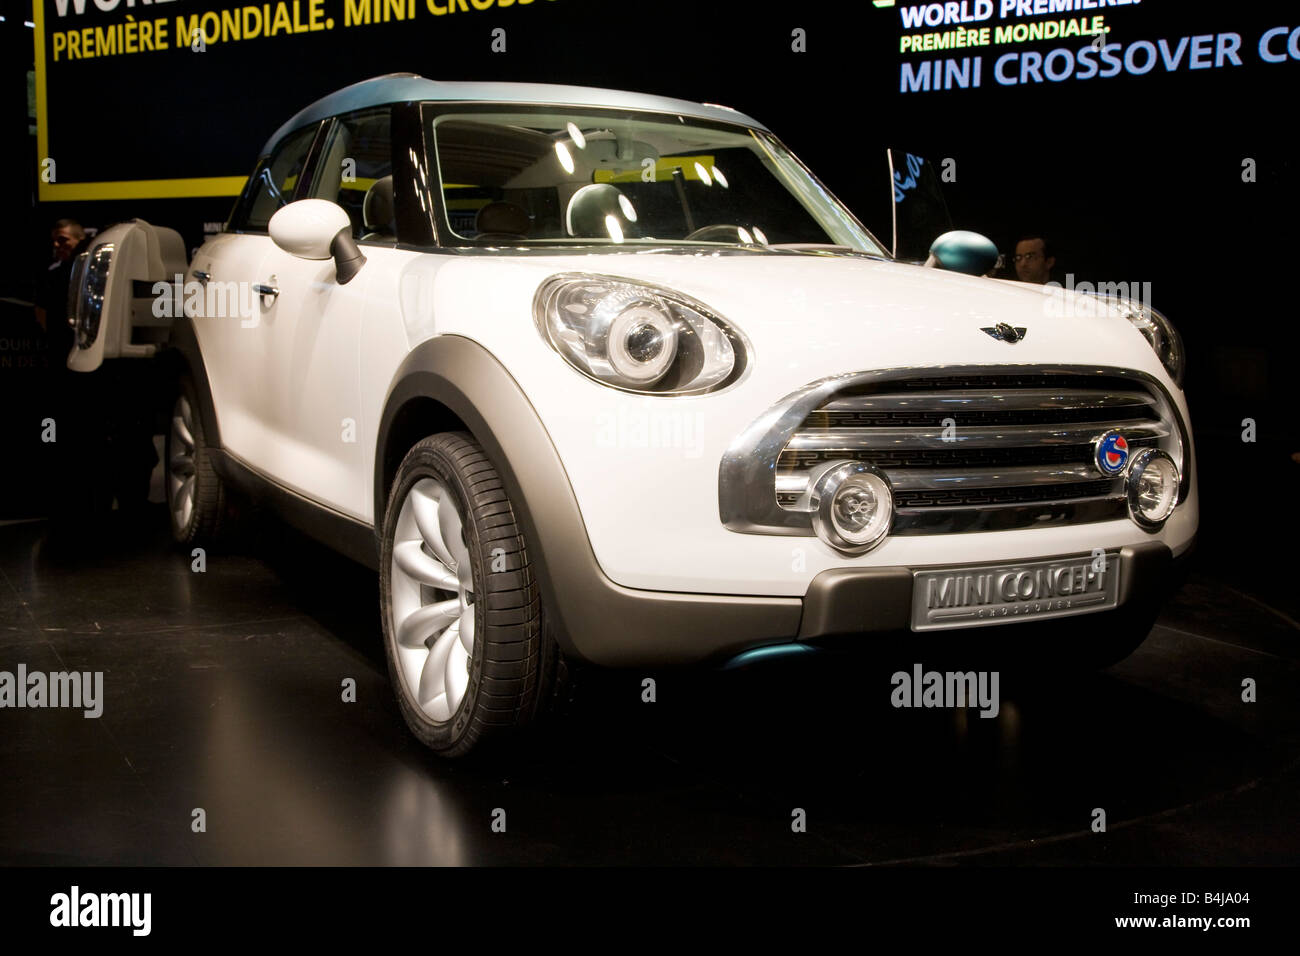 BMW Mini Crossover Concept. On show at a Motor Show 2008. The Mondial de l'Automobile. - Stock Image